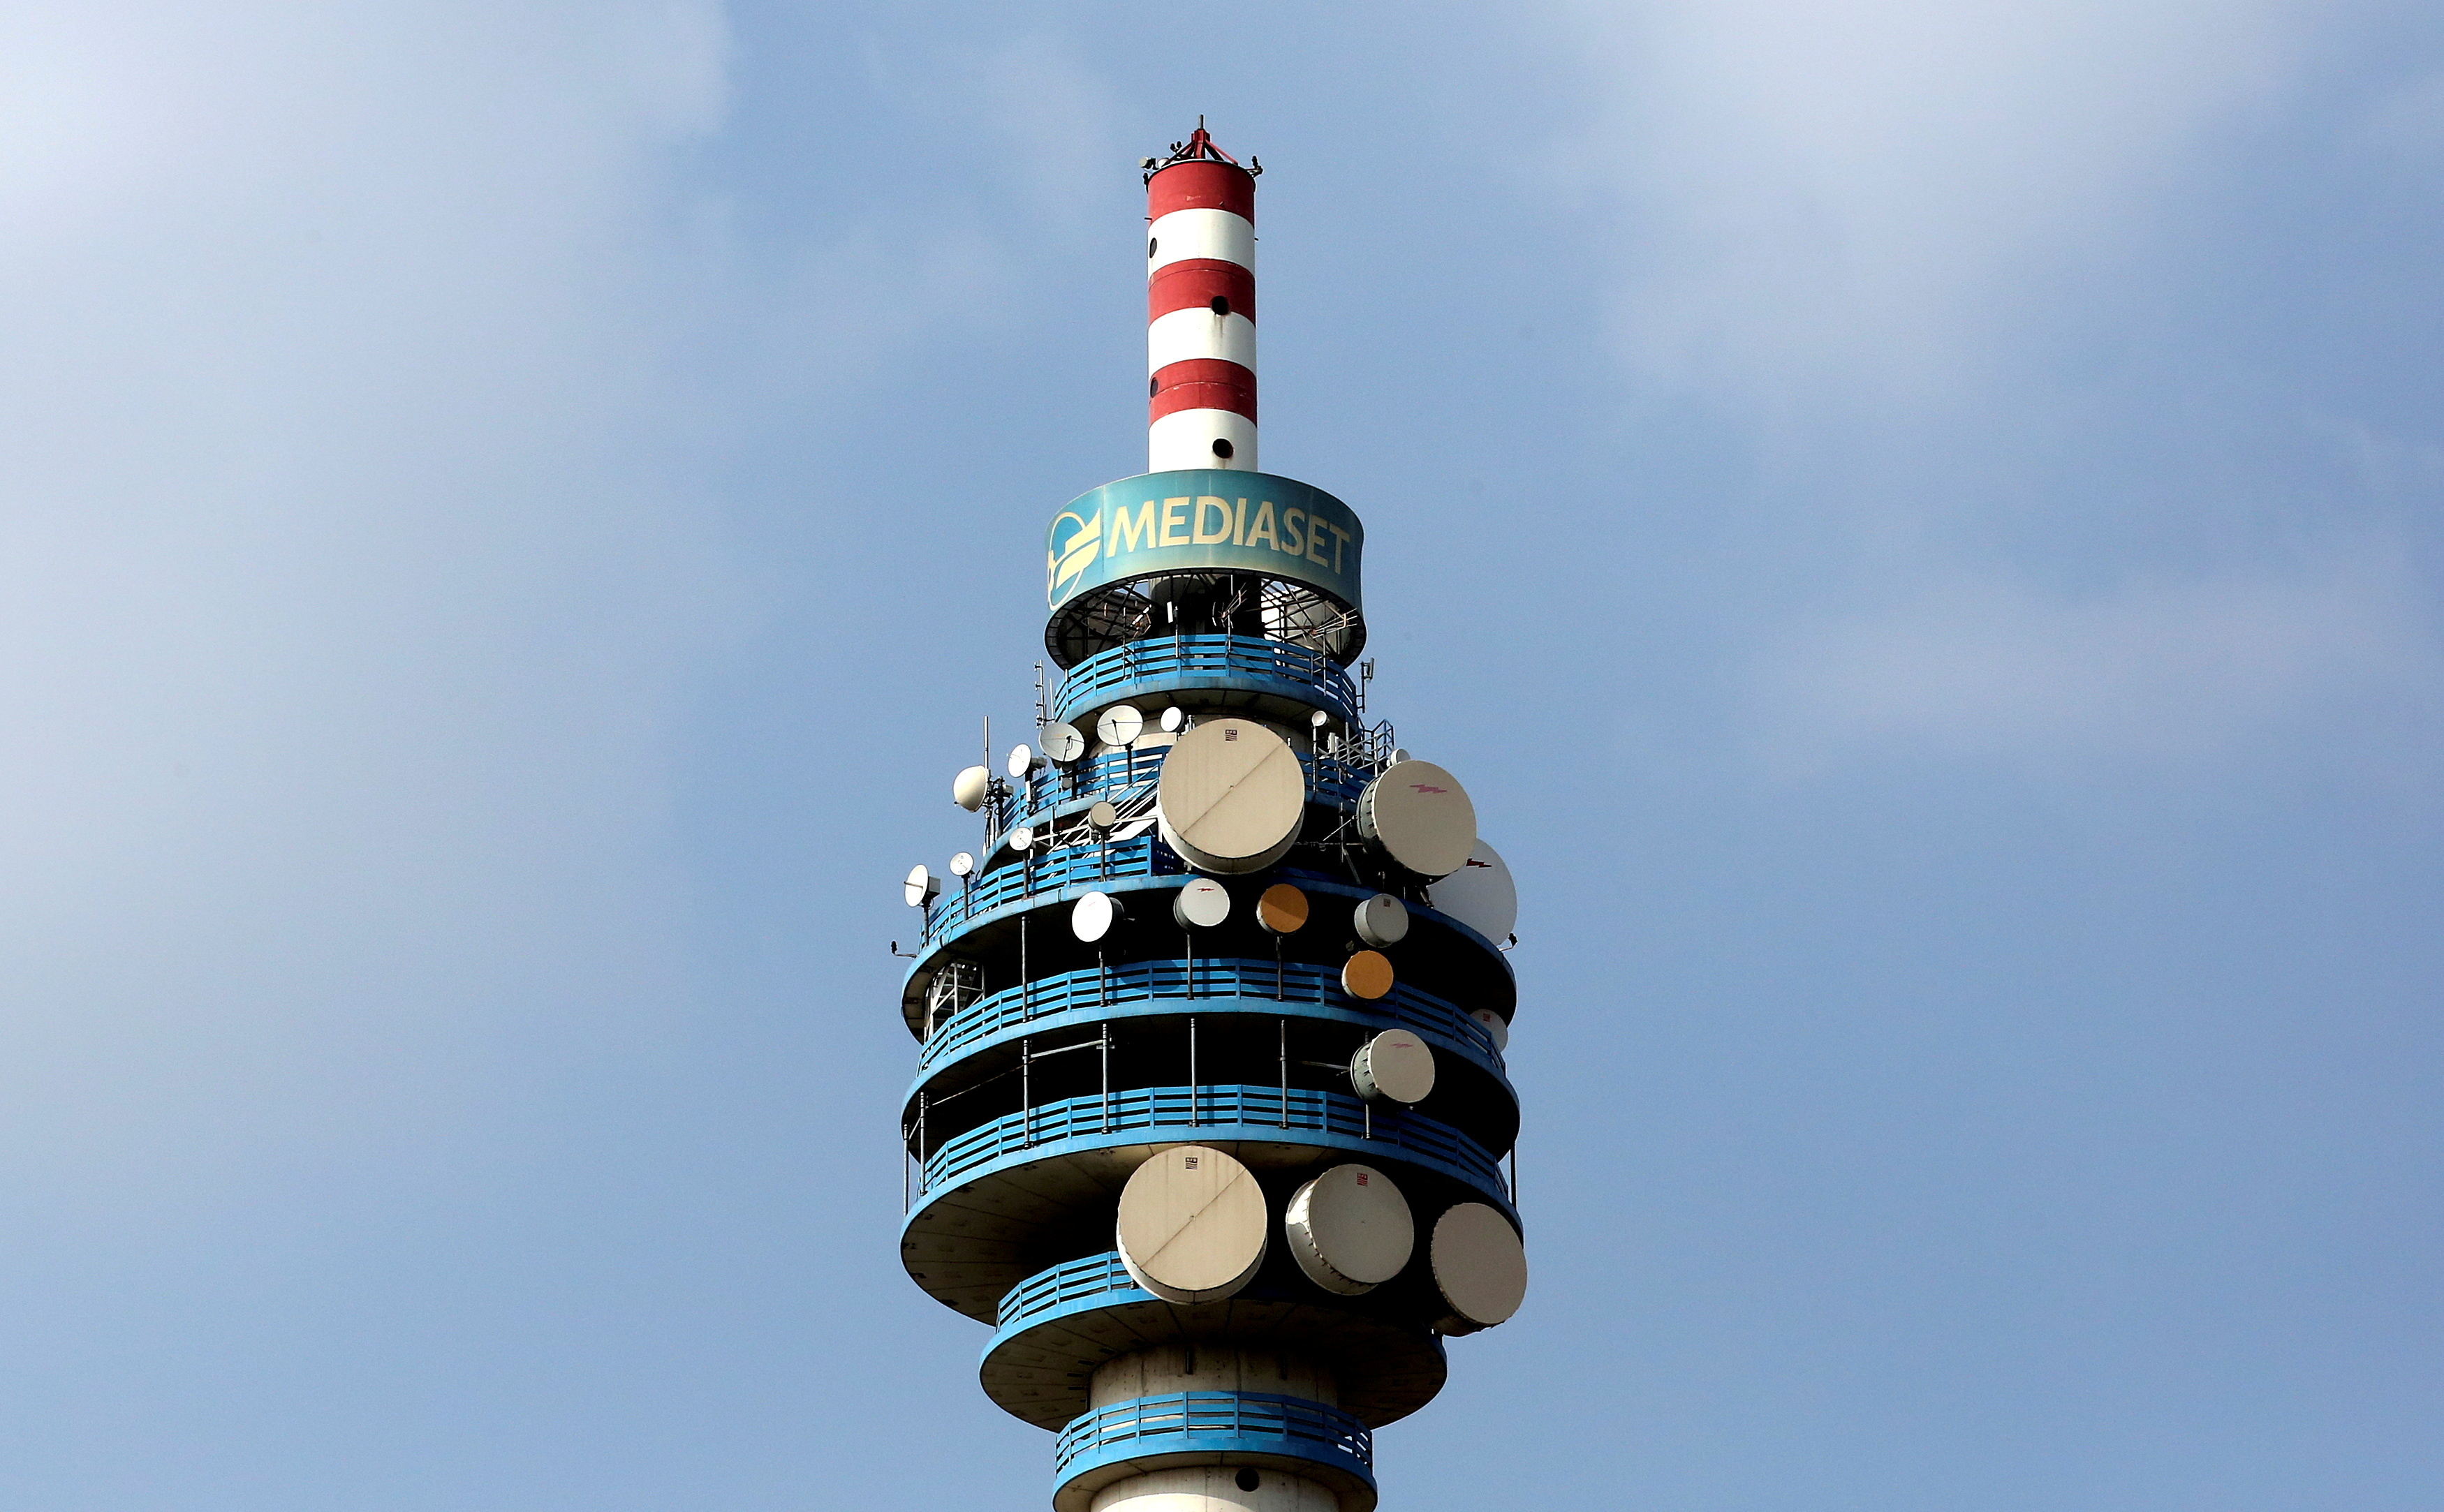 The Mediaset tower is seen in Cologno Monzese neighbourhood Milan, Italy, April 7, 2016. REUTERS/Stefano Rellandini/File Photo